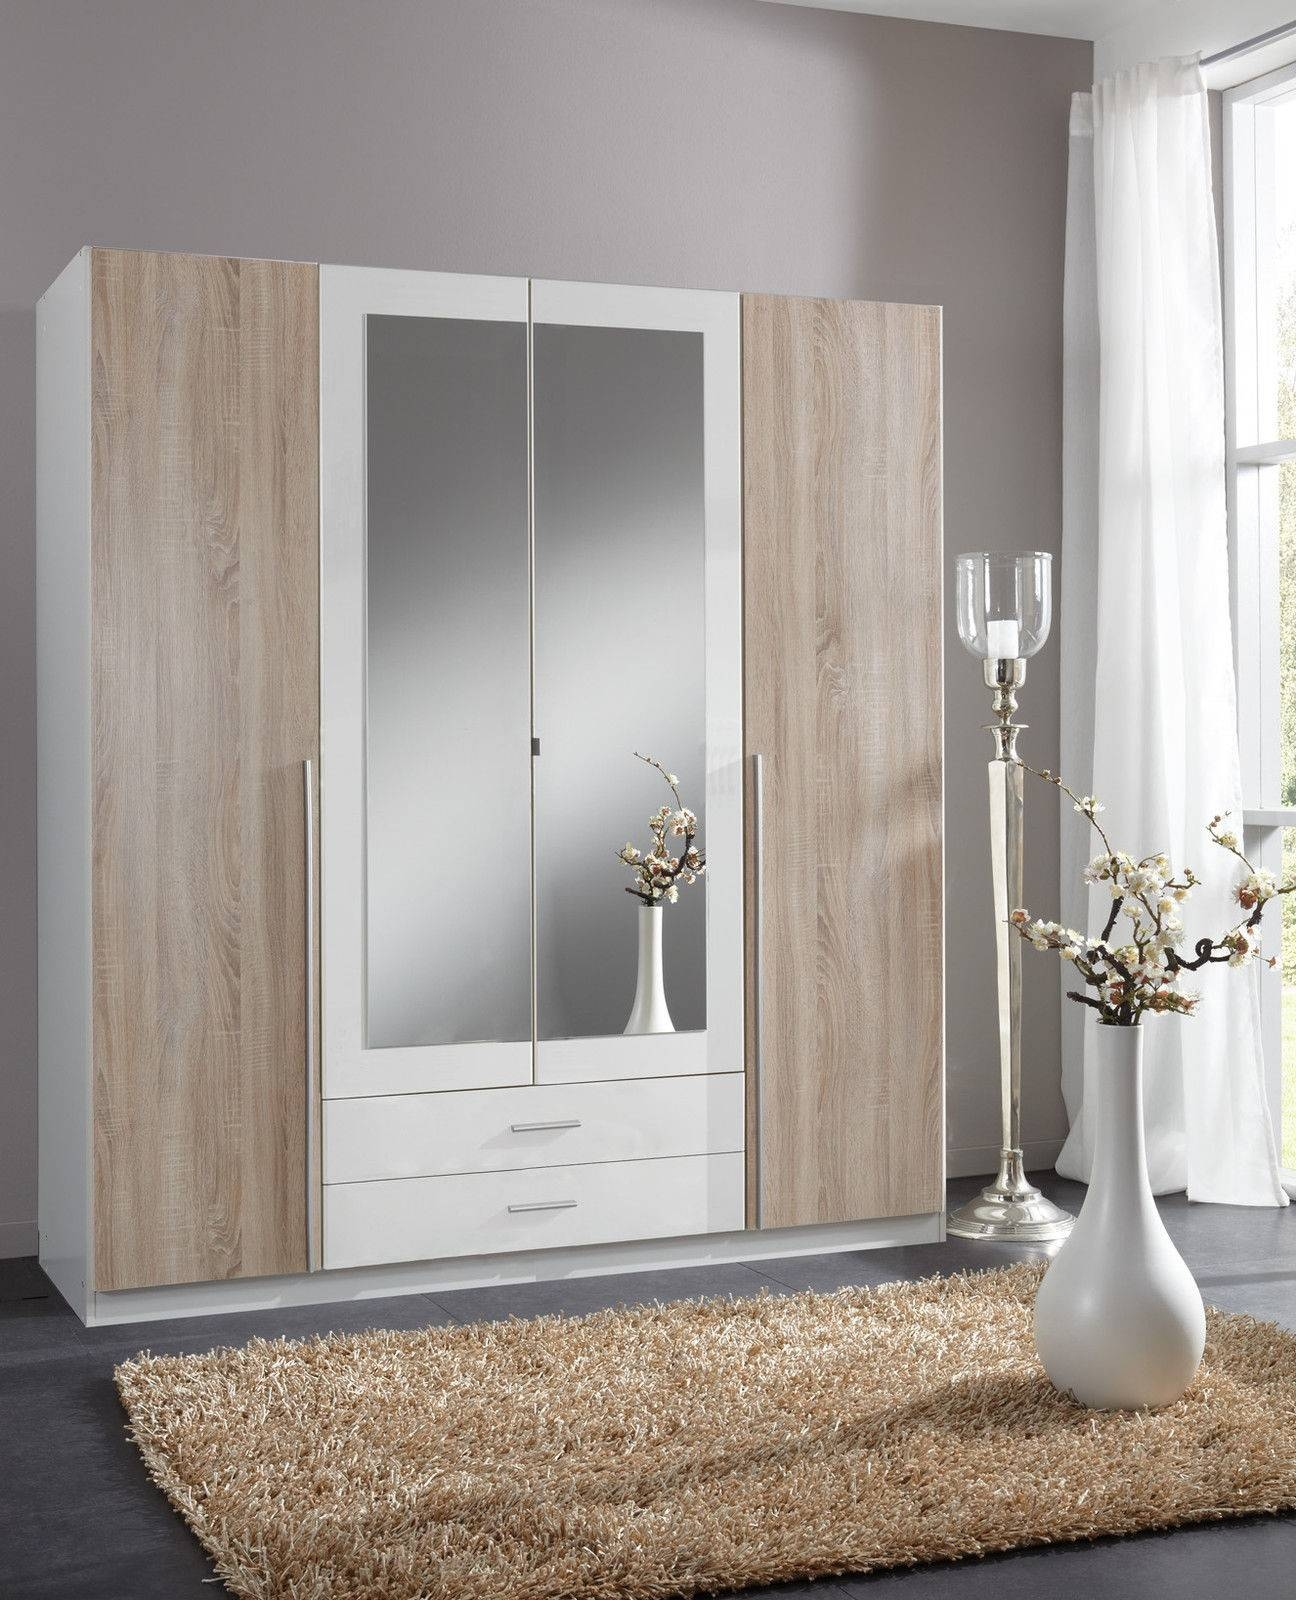 Slumberhaus 'skate' German Made Modern Alpine White, Oak And inside Oak Mirrored Wardrobes (Image 15 of 15)